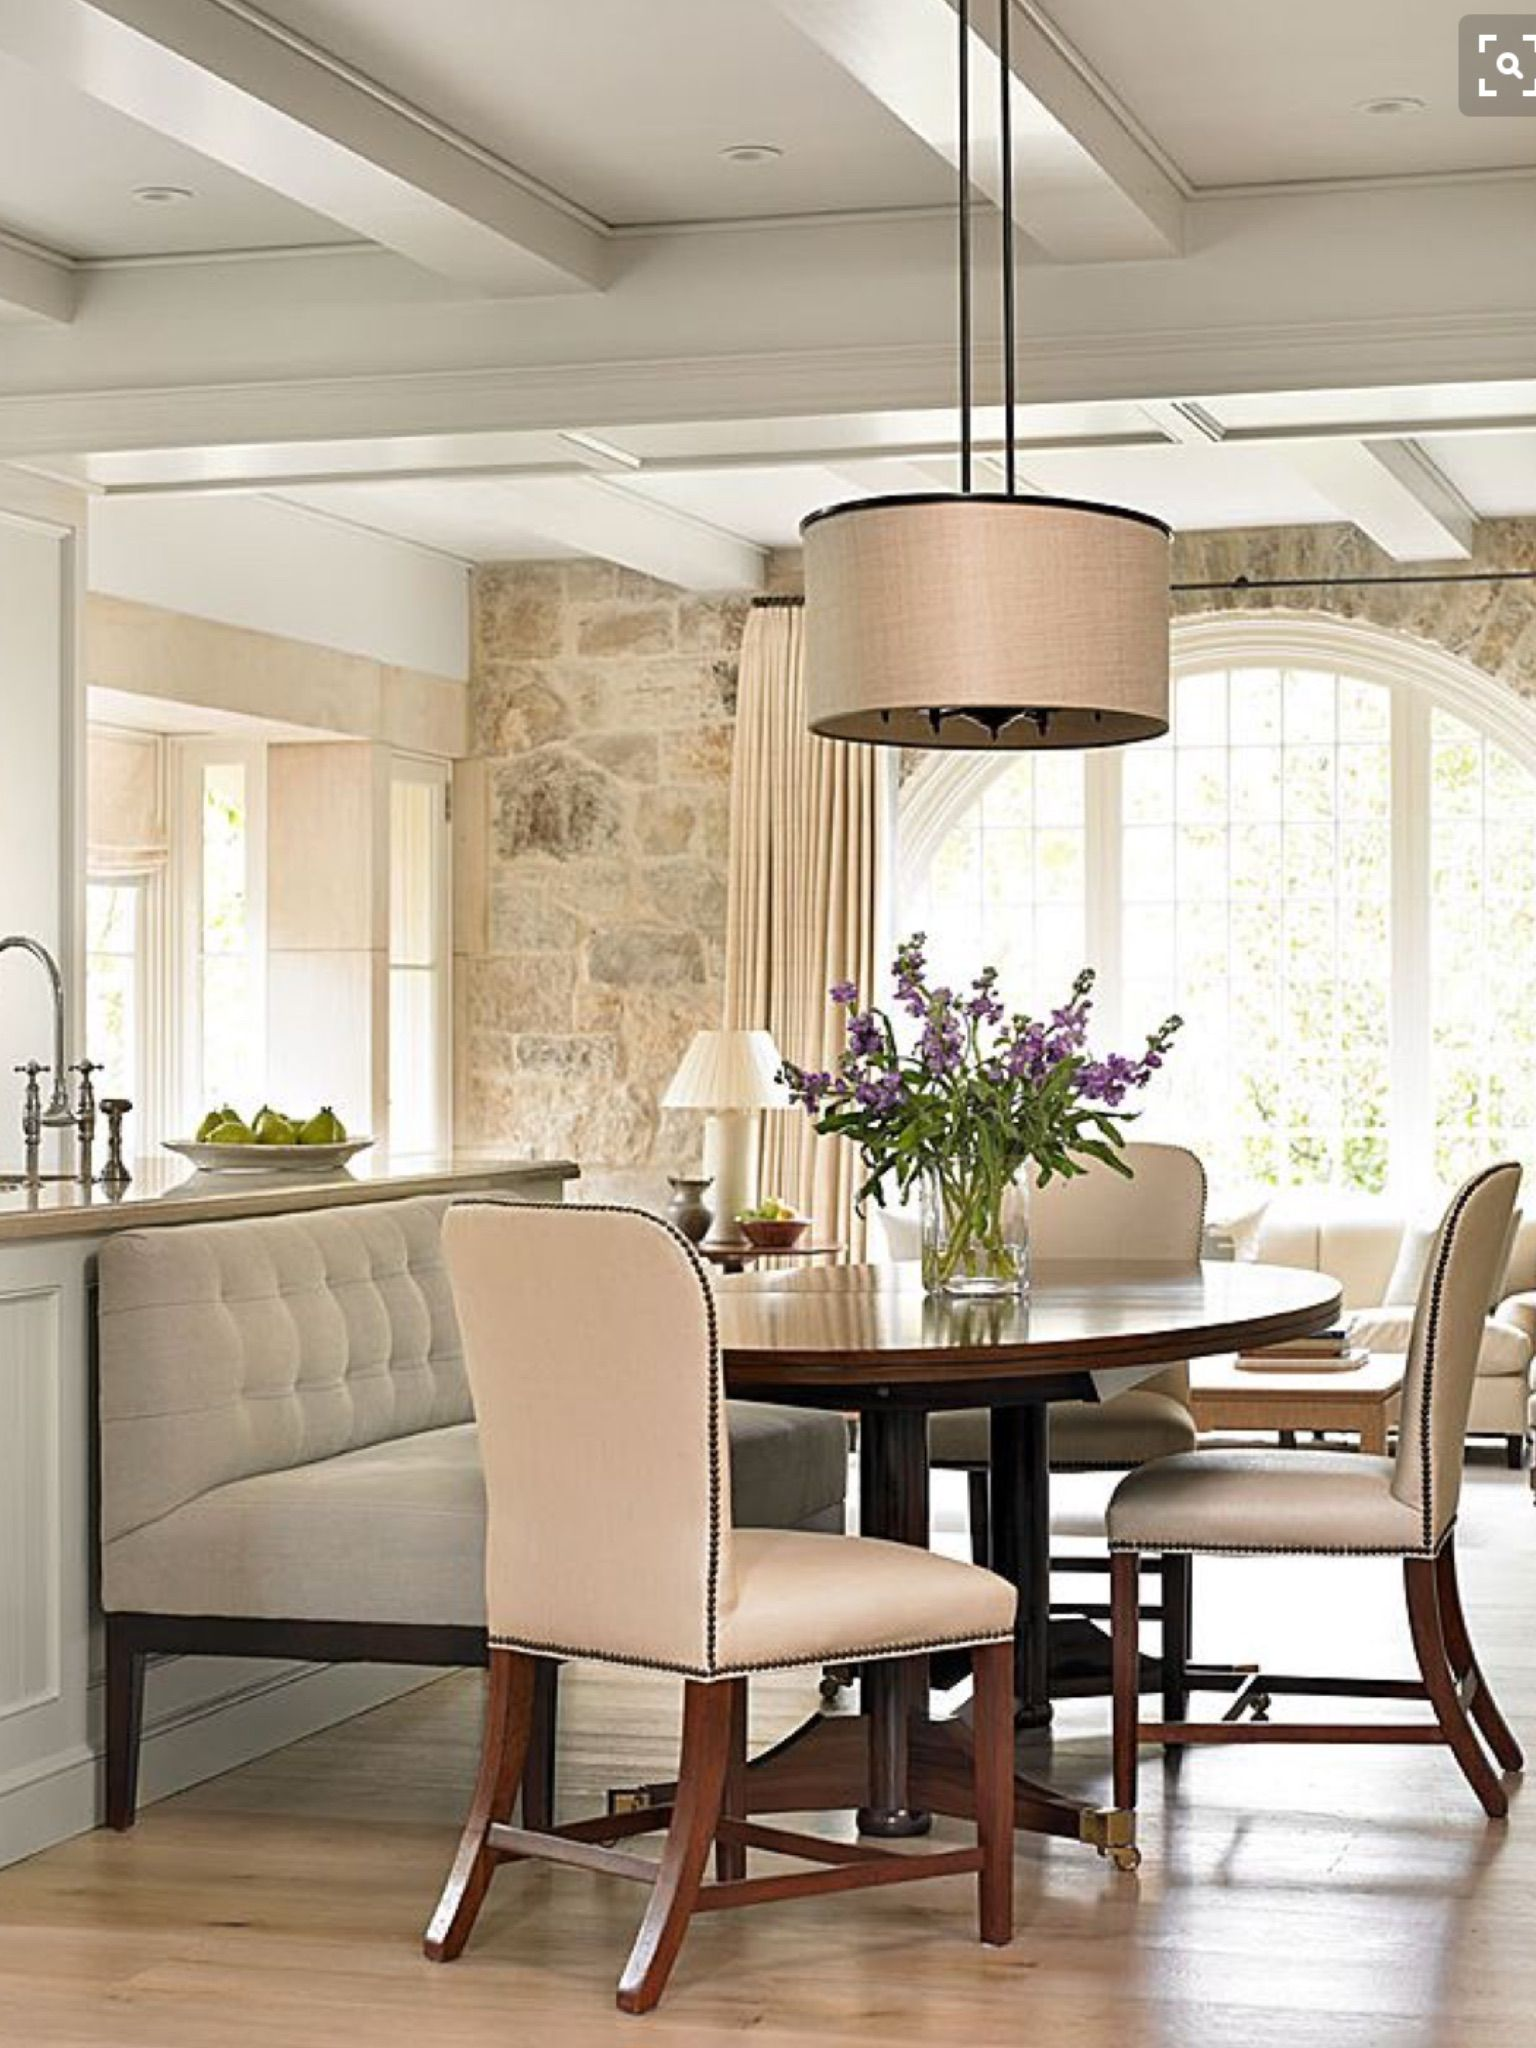 Pin By Bev Ford On Screenshots Home Decor Home Dining Room Decor